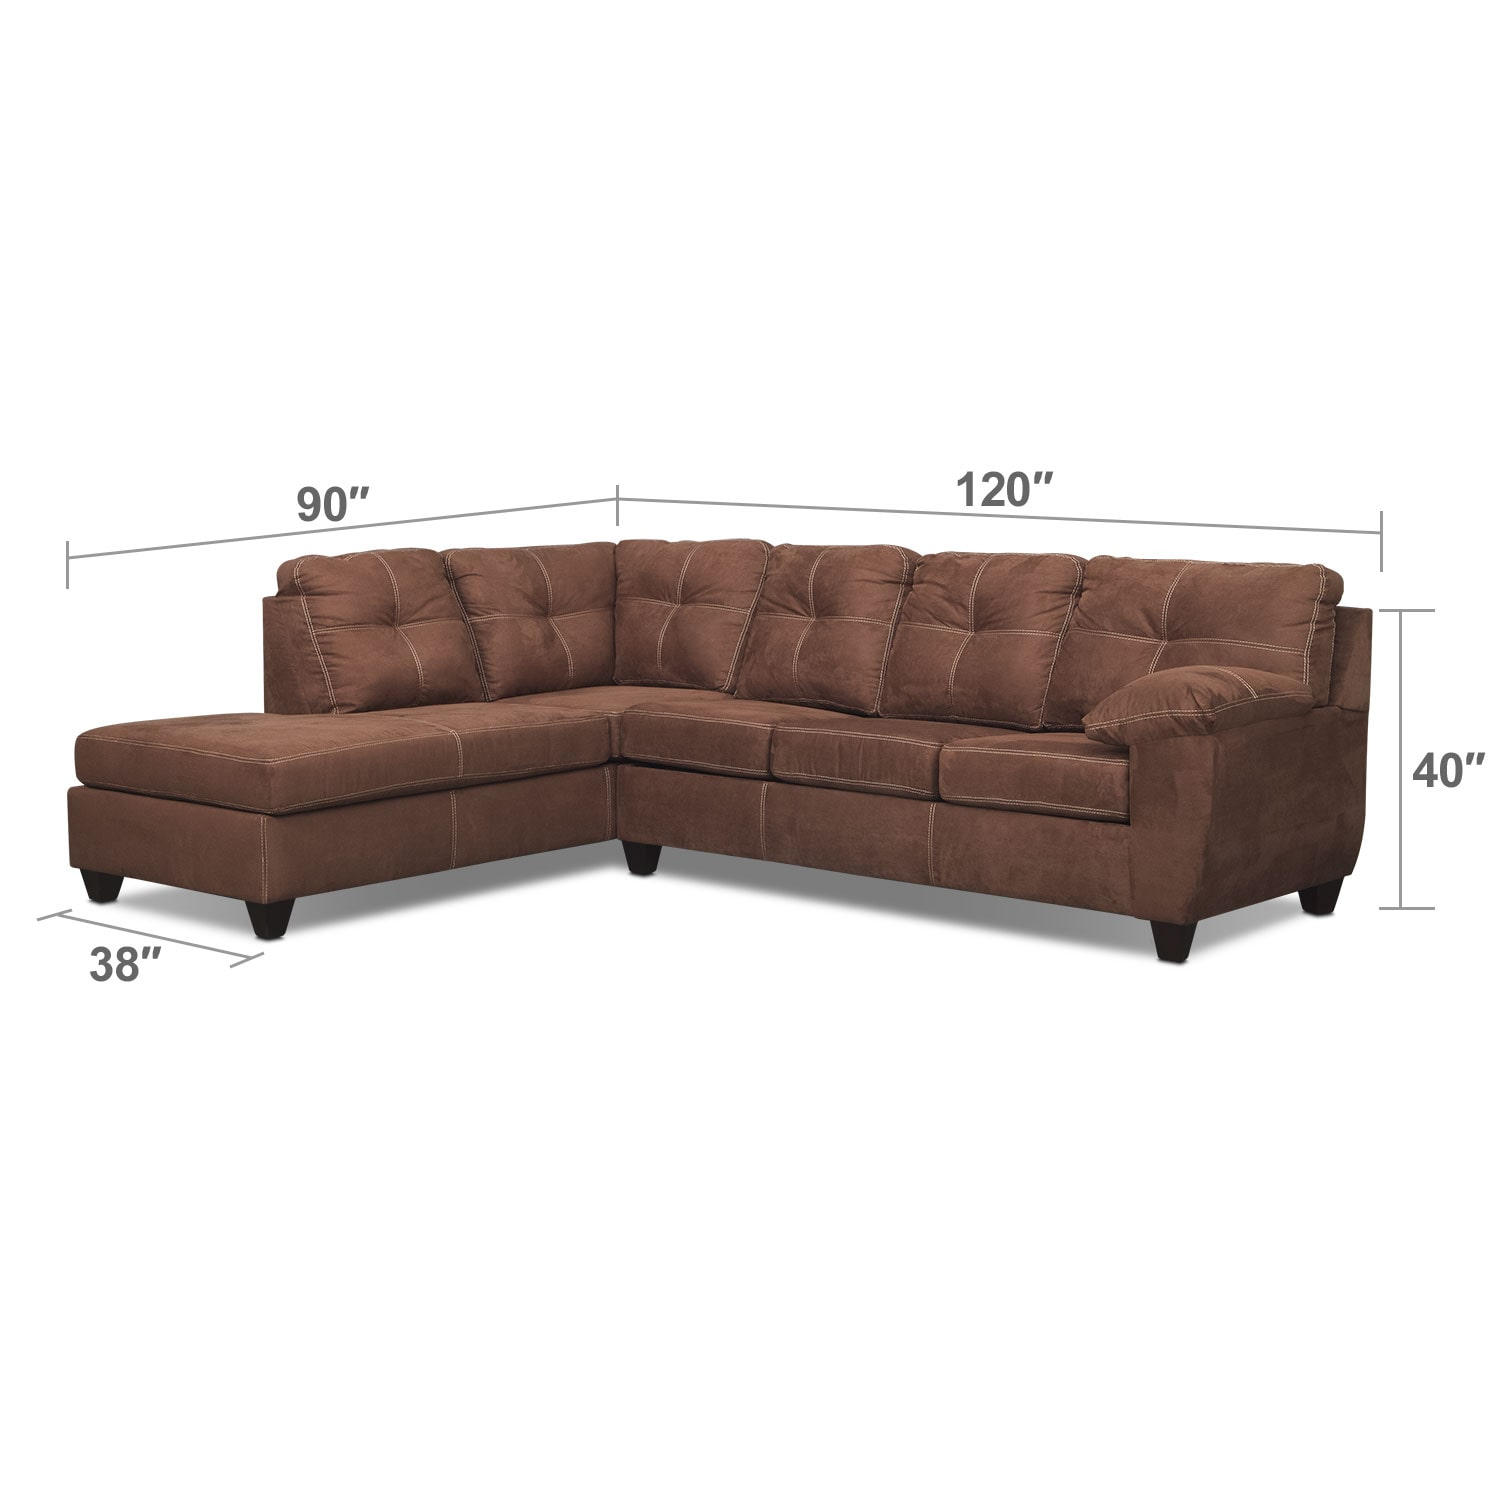 Living Room Furniture - Rialto 2-Piece Memory Foam Sleeper Sectional with Left-Facing Chaise - Coffee